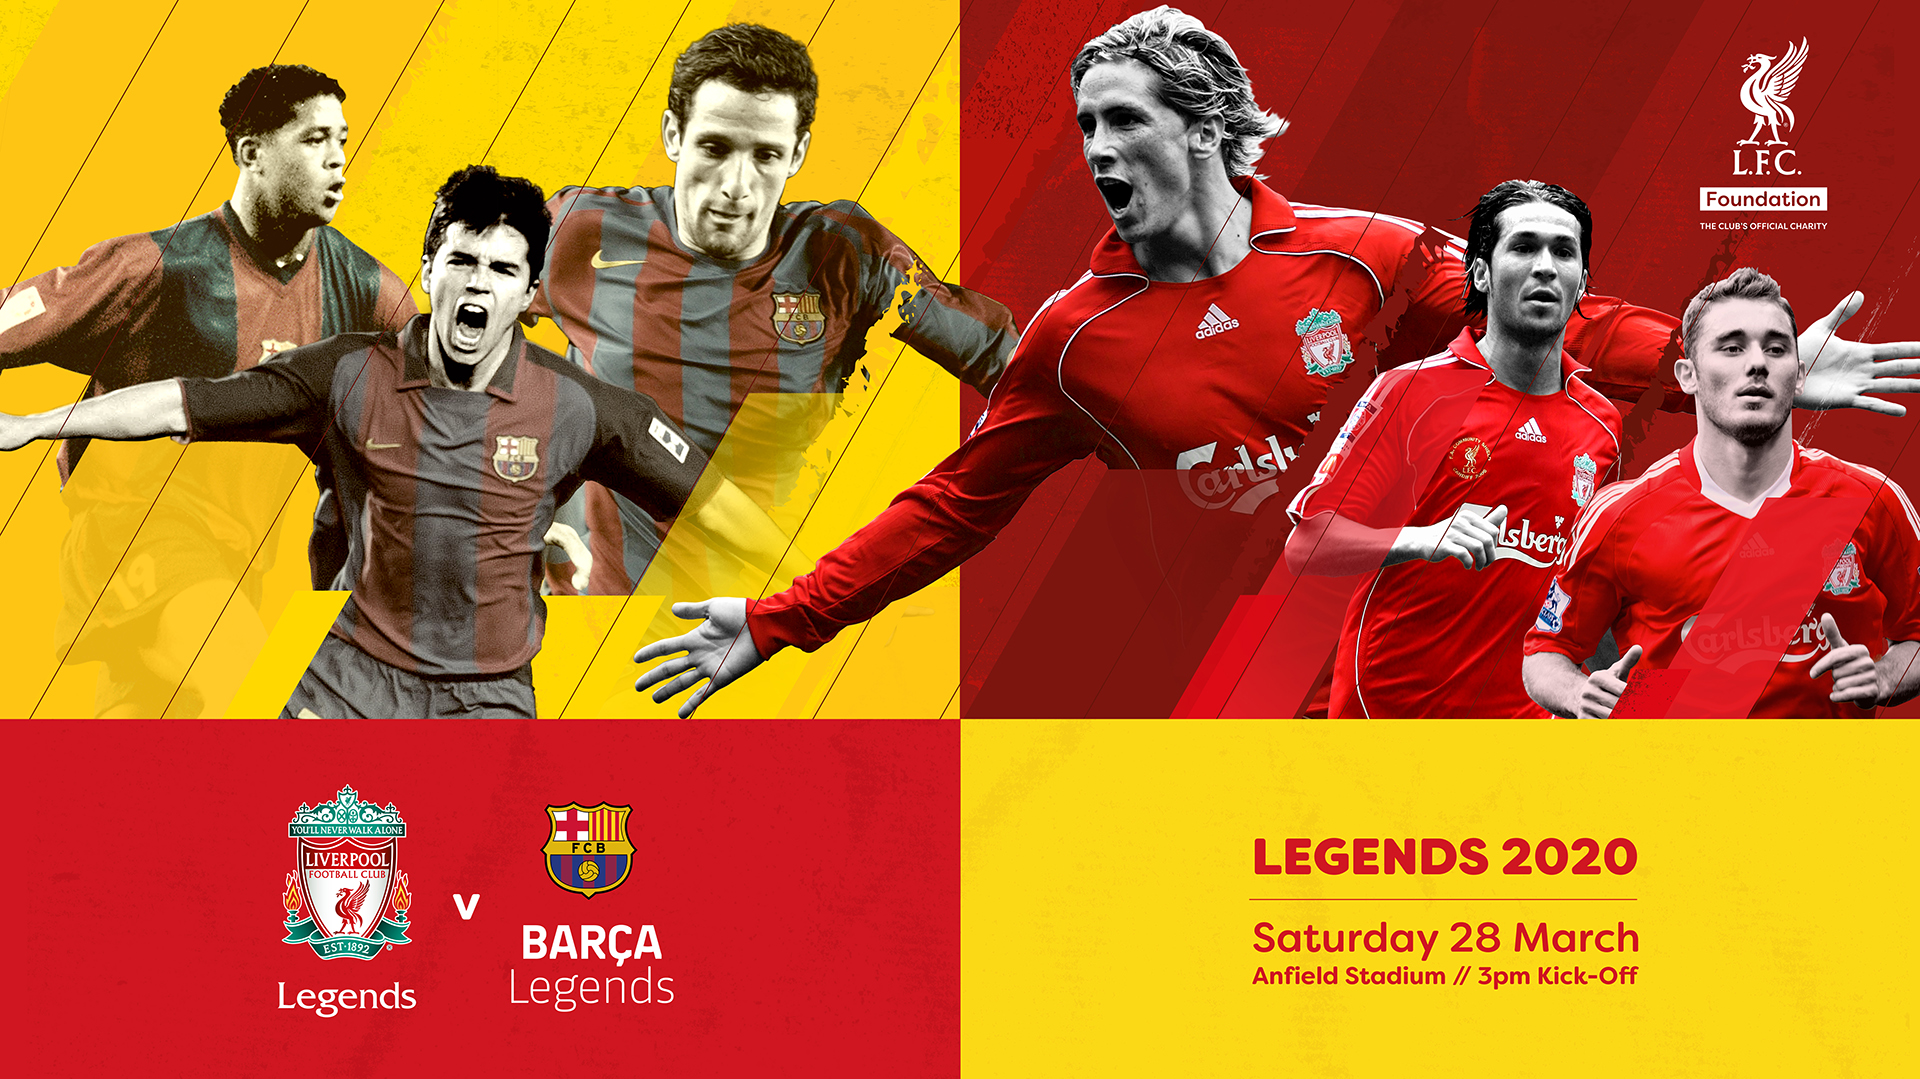 Barca Legends Will Face Liverpool Fc Legends On Saturday 28 March At Anfield